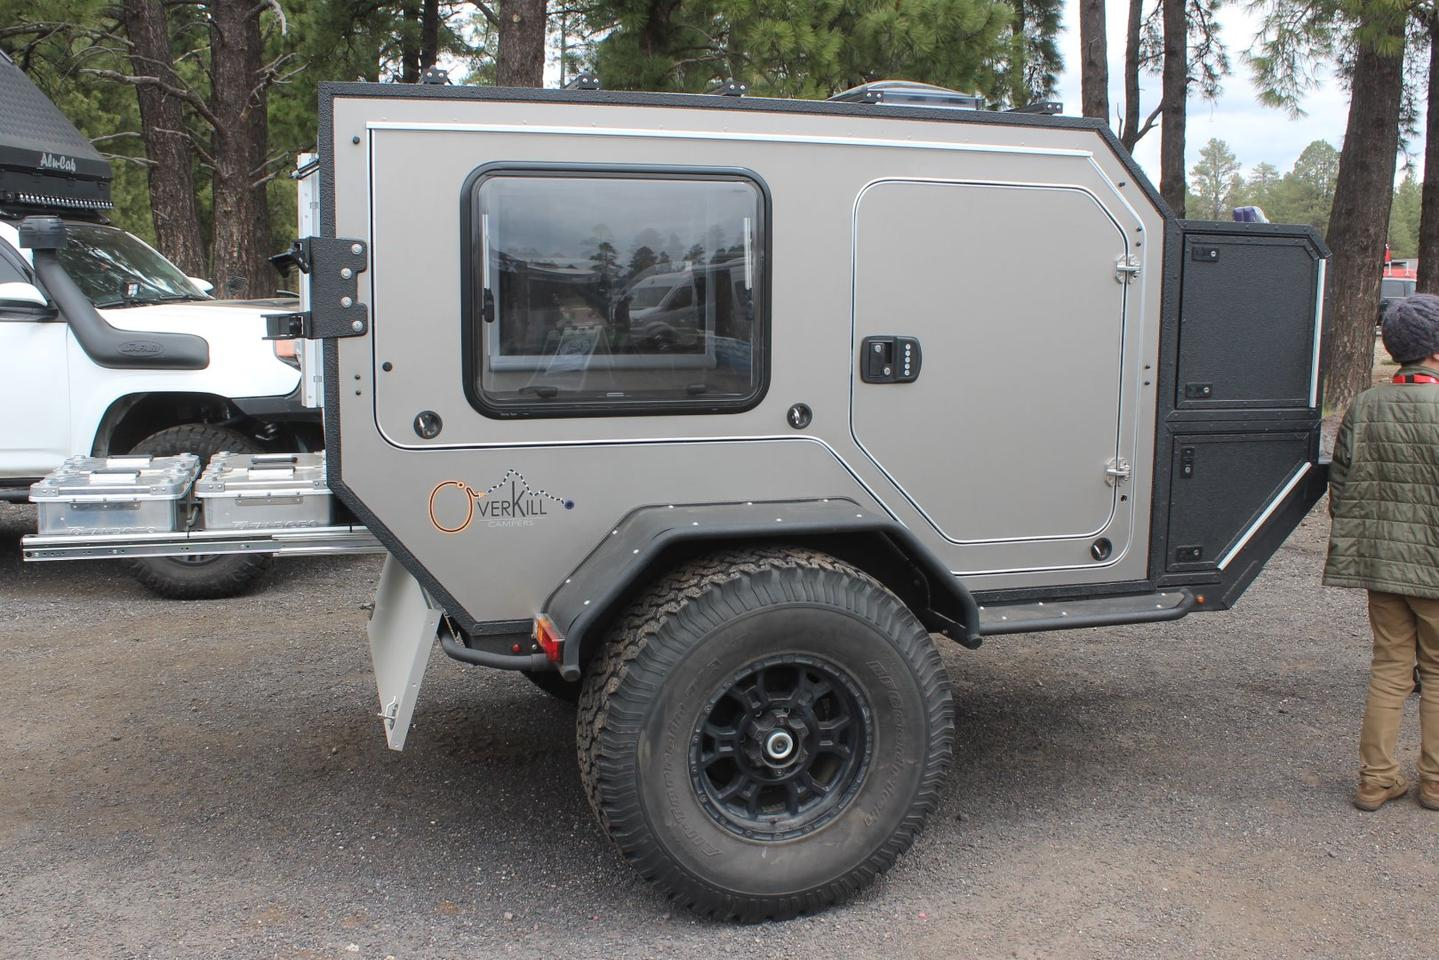 Overkill T K 4 7 off-road camping trailer rides small but